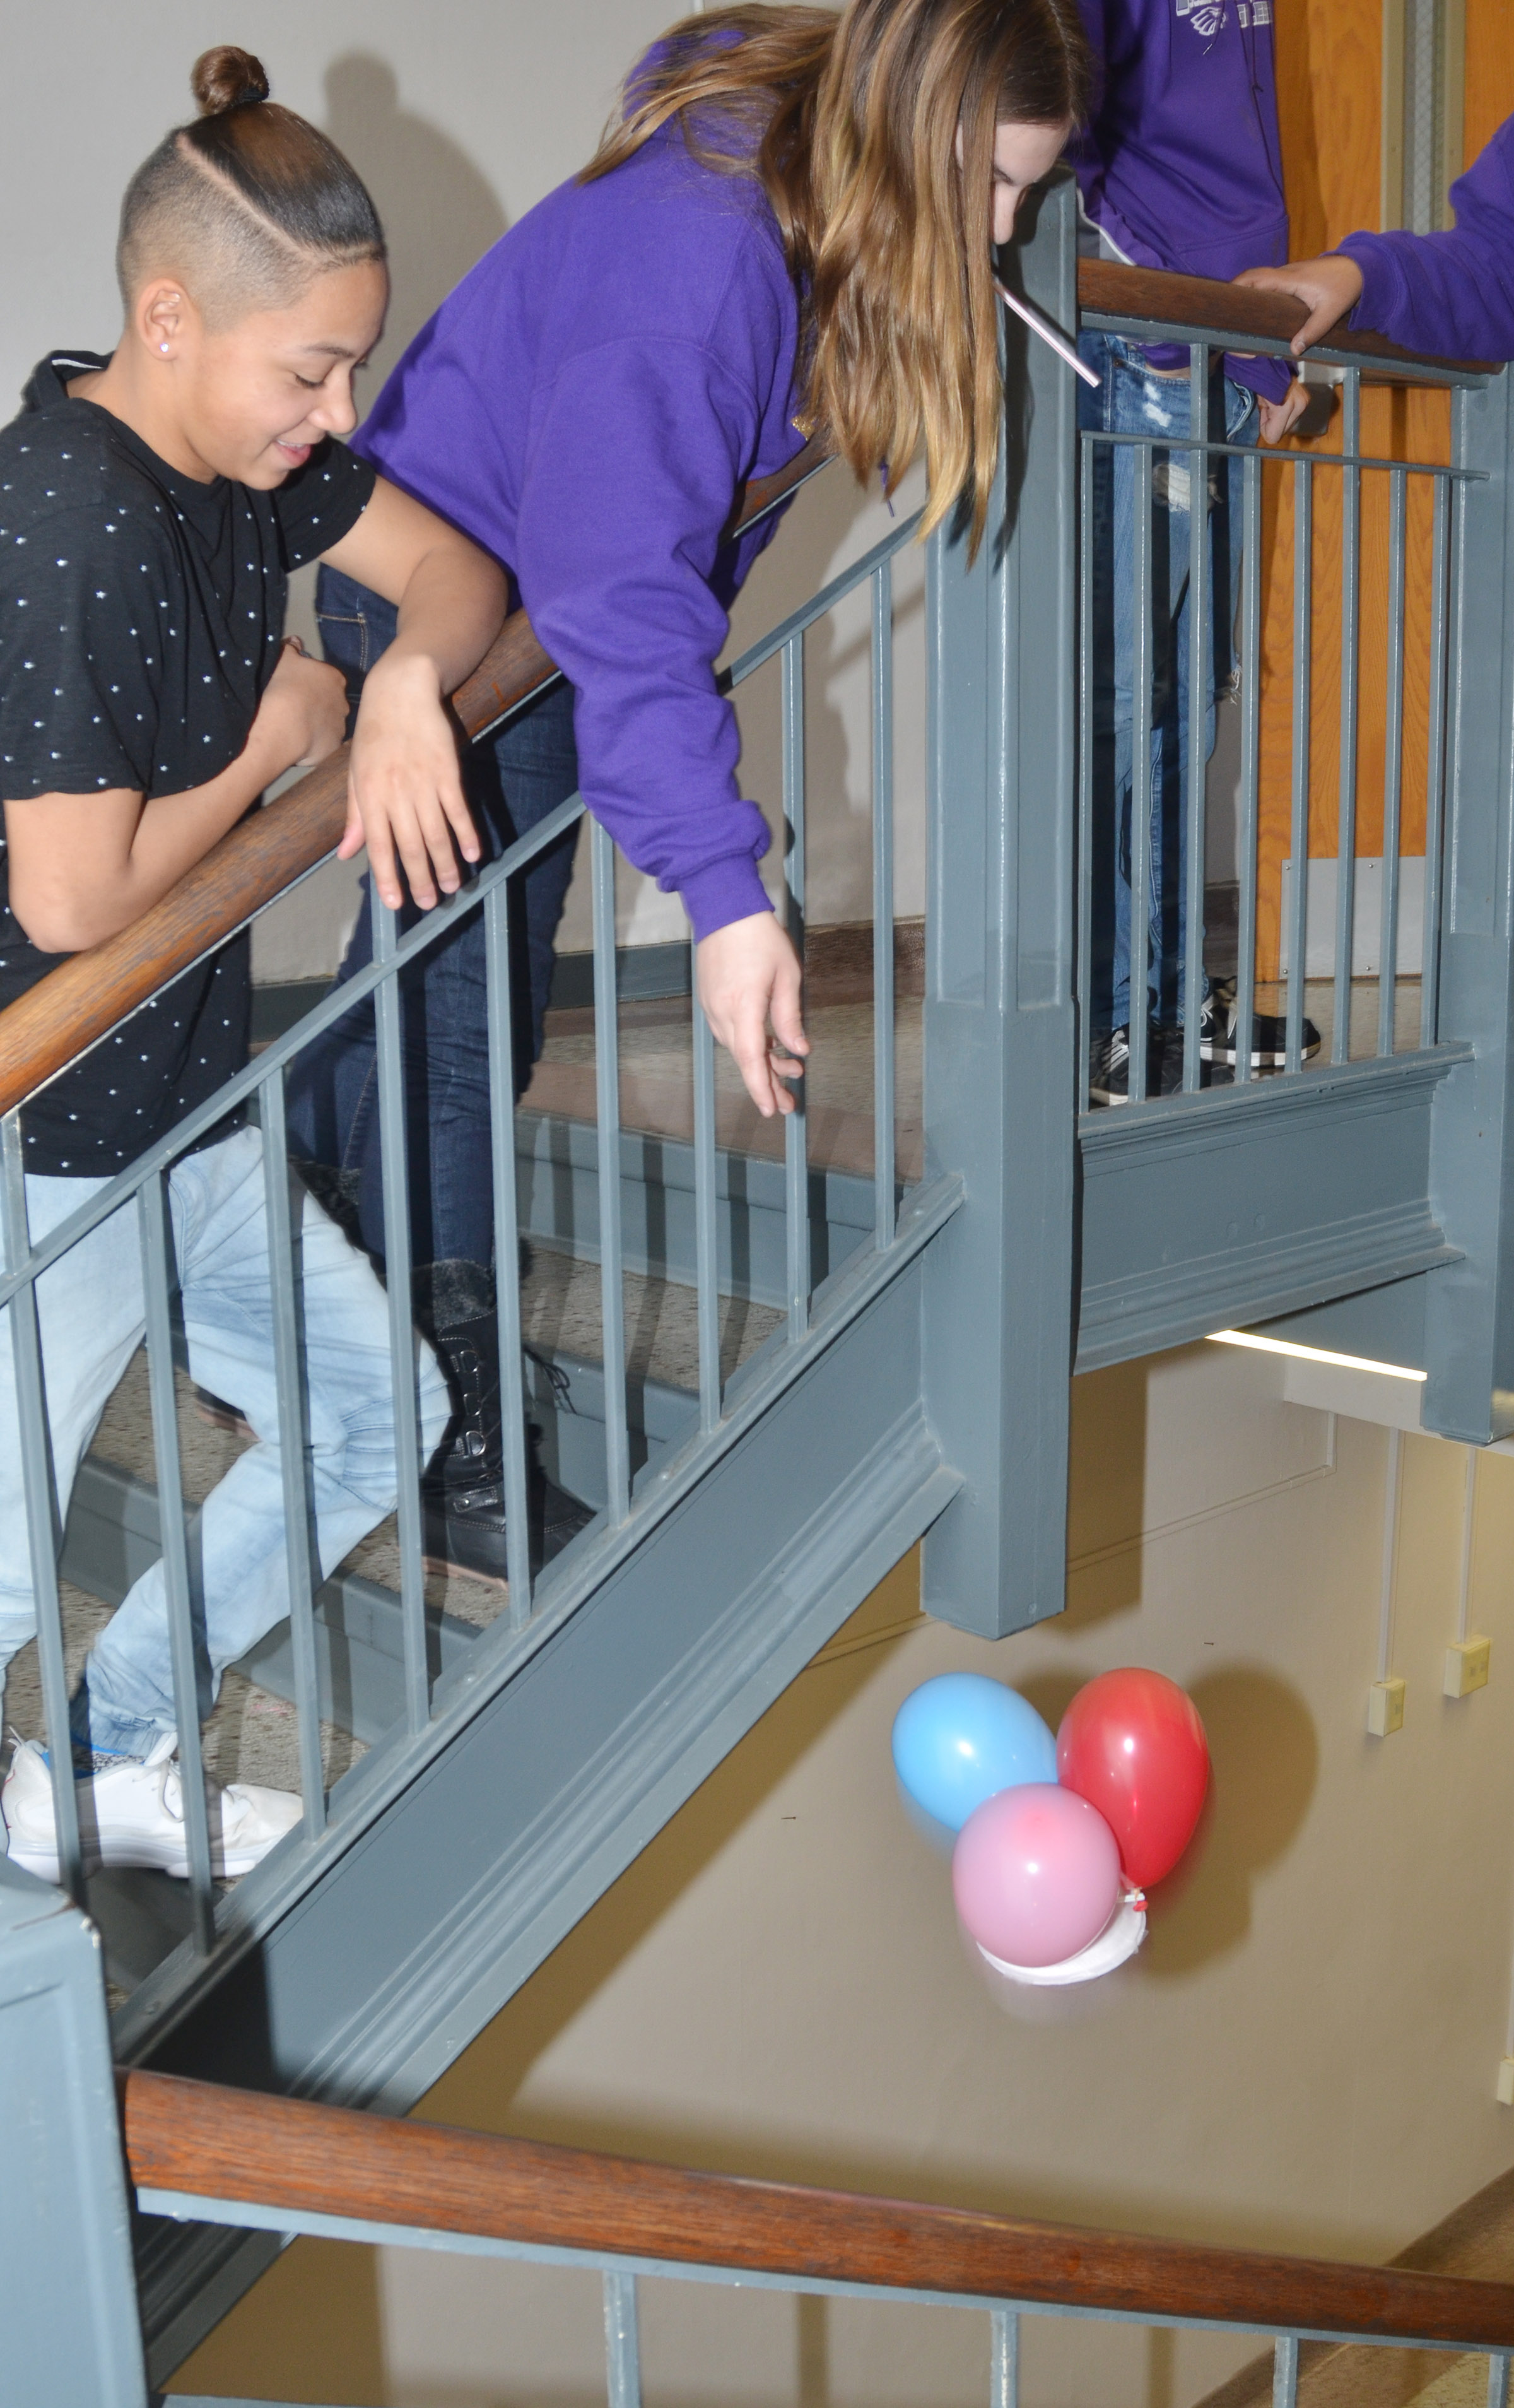 CMS eighth-grader Samantha Underwood drops the egg dropper container she built with classmate Taylor Whaley, at left.